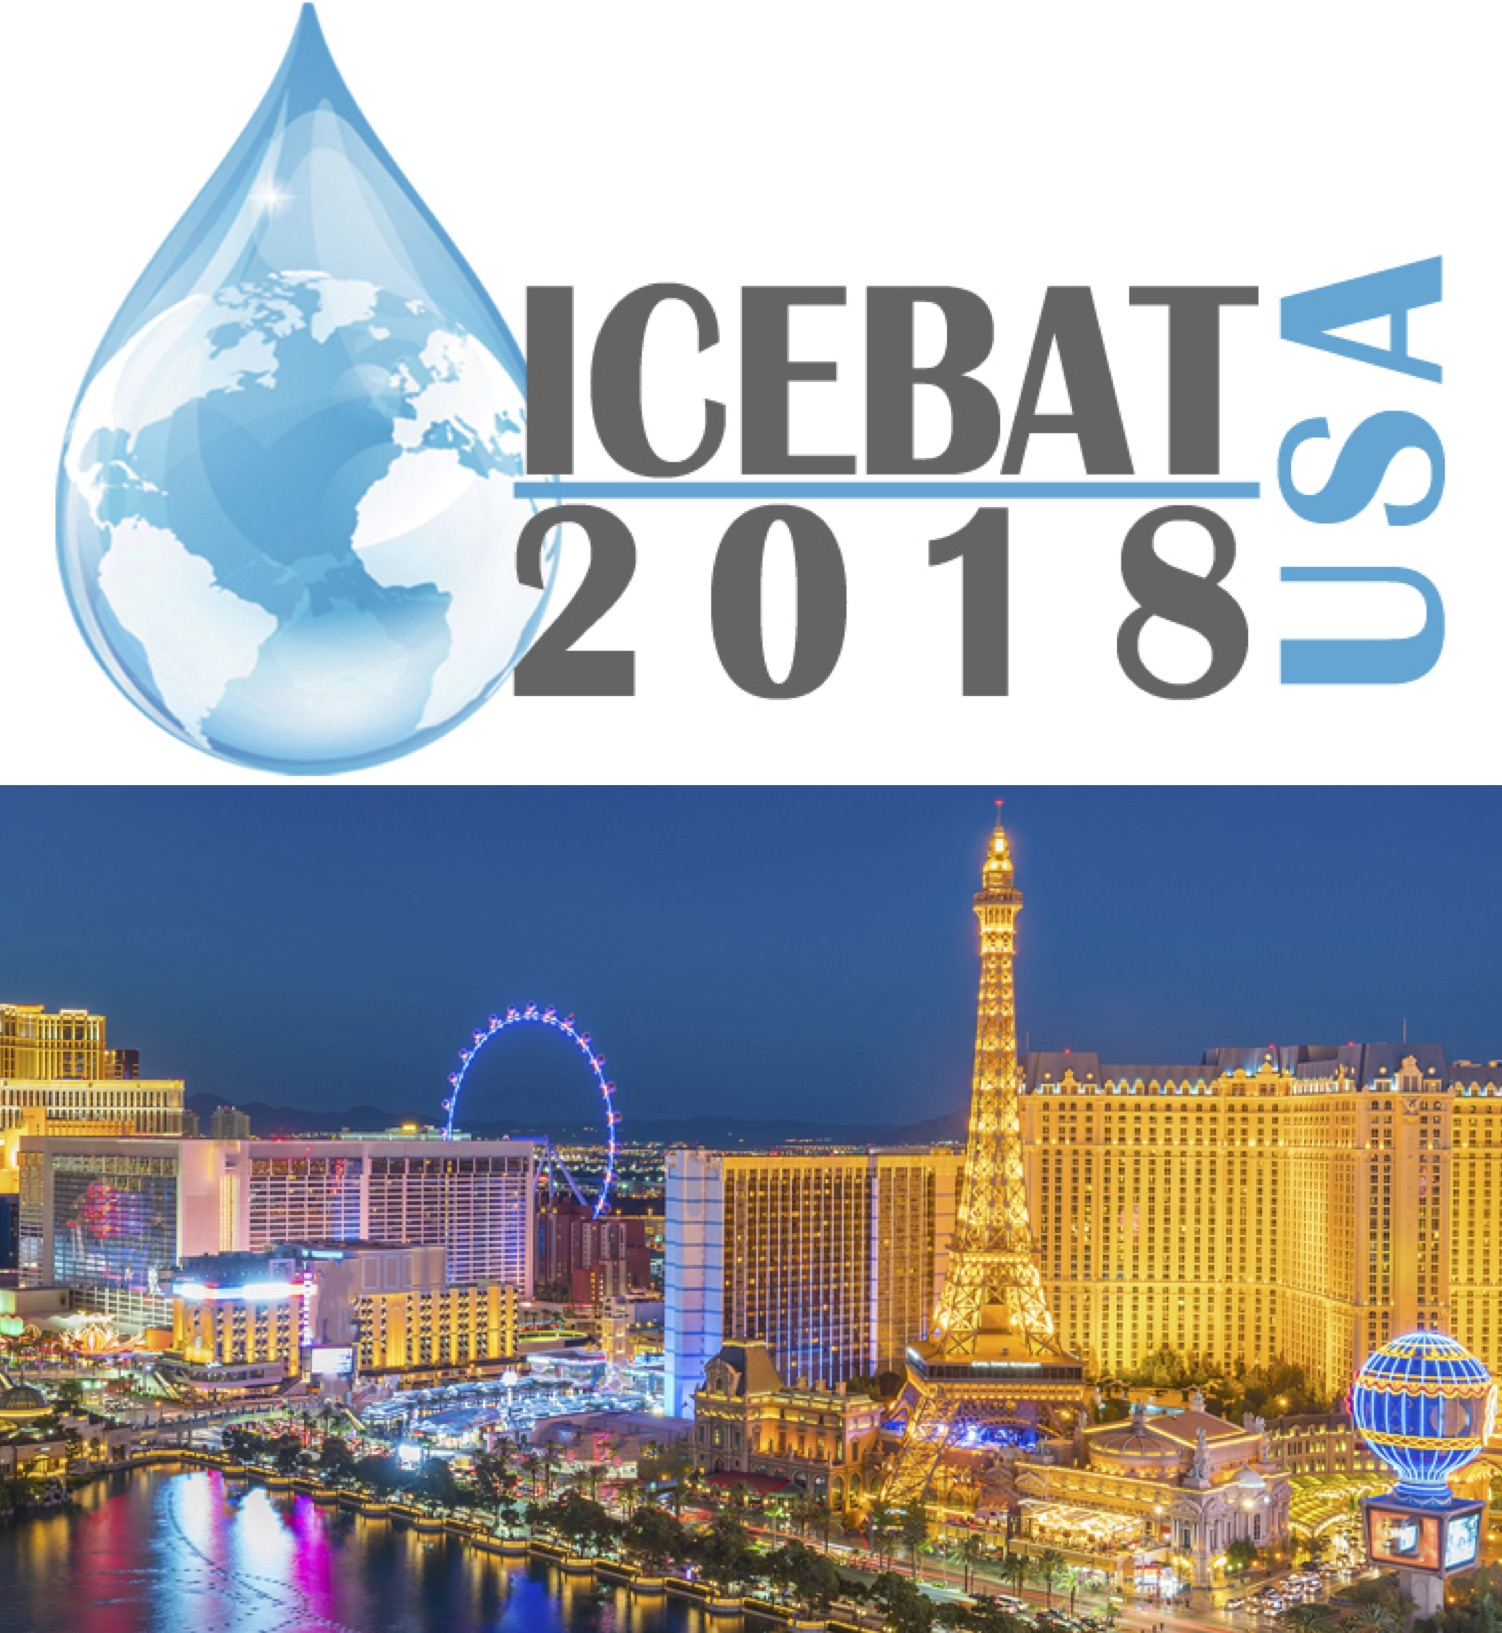 5th International Conference on Evidence Based Aquatic Therapy (ICEBAT)